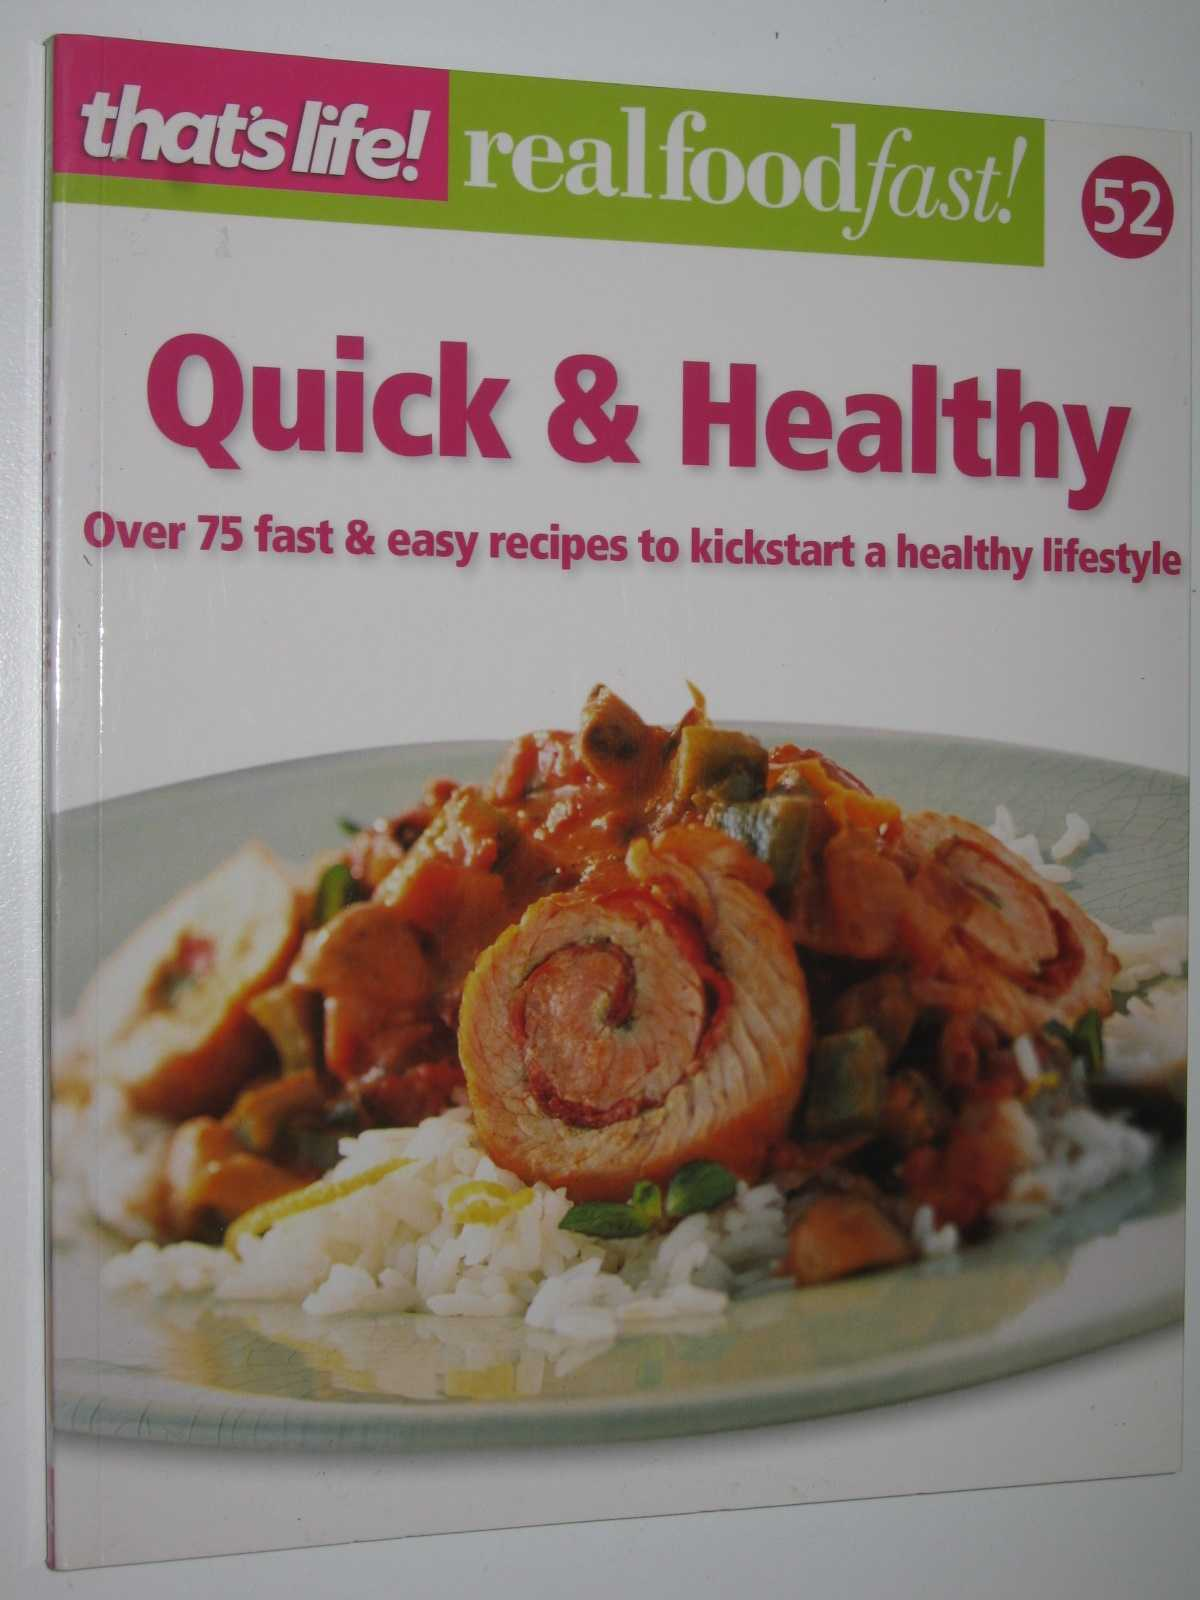 Image for Quick and Healthy - Real Food Fast! Series #52